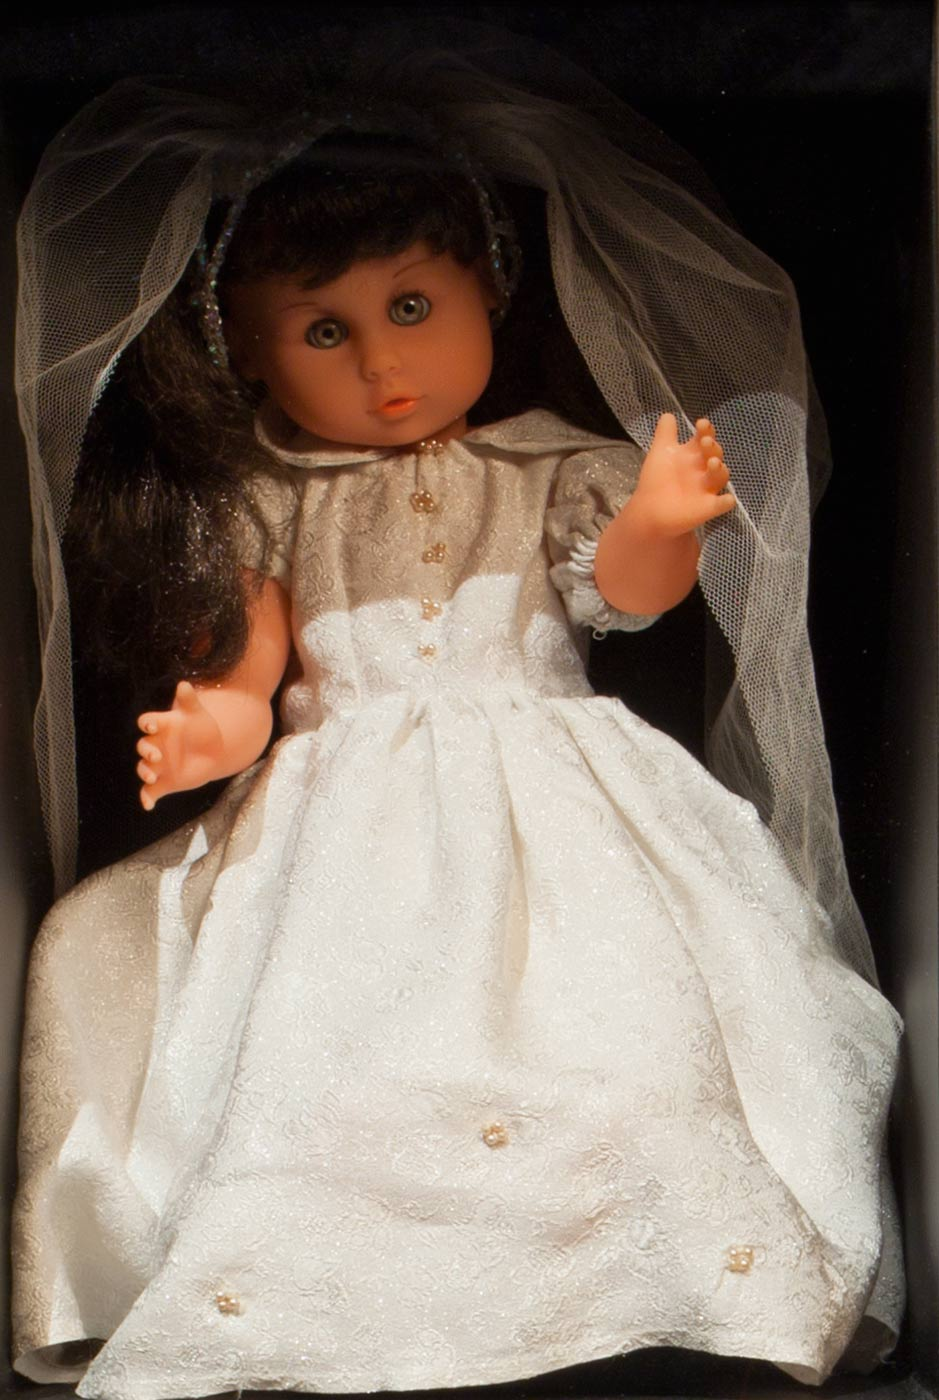 A colour photo of a dark haired doll wearing a bridal dress and veil. - click to view larger image